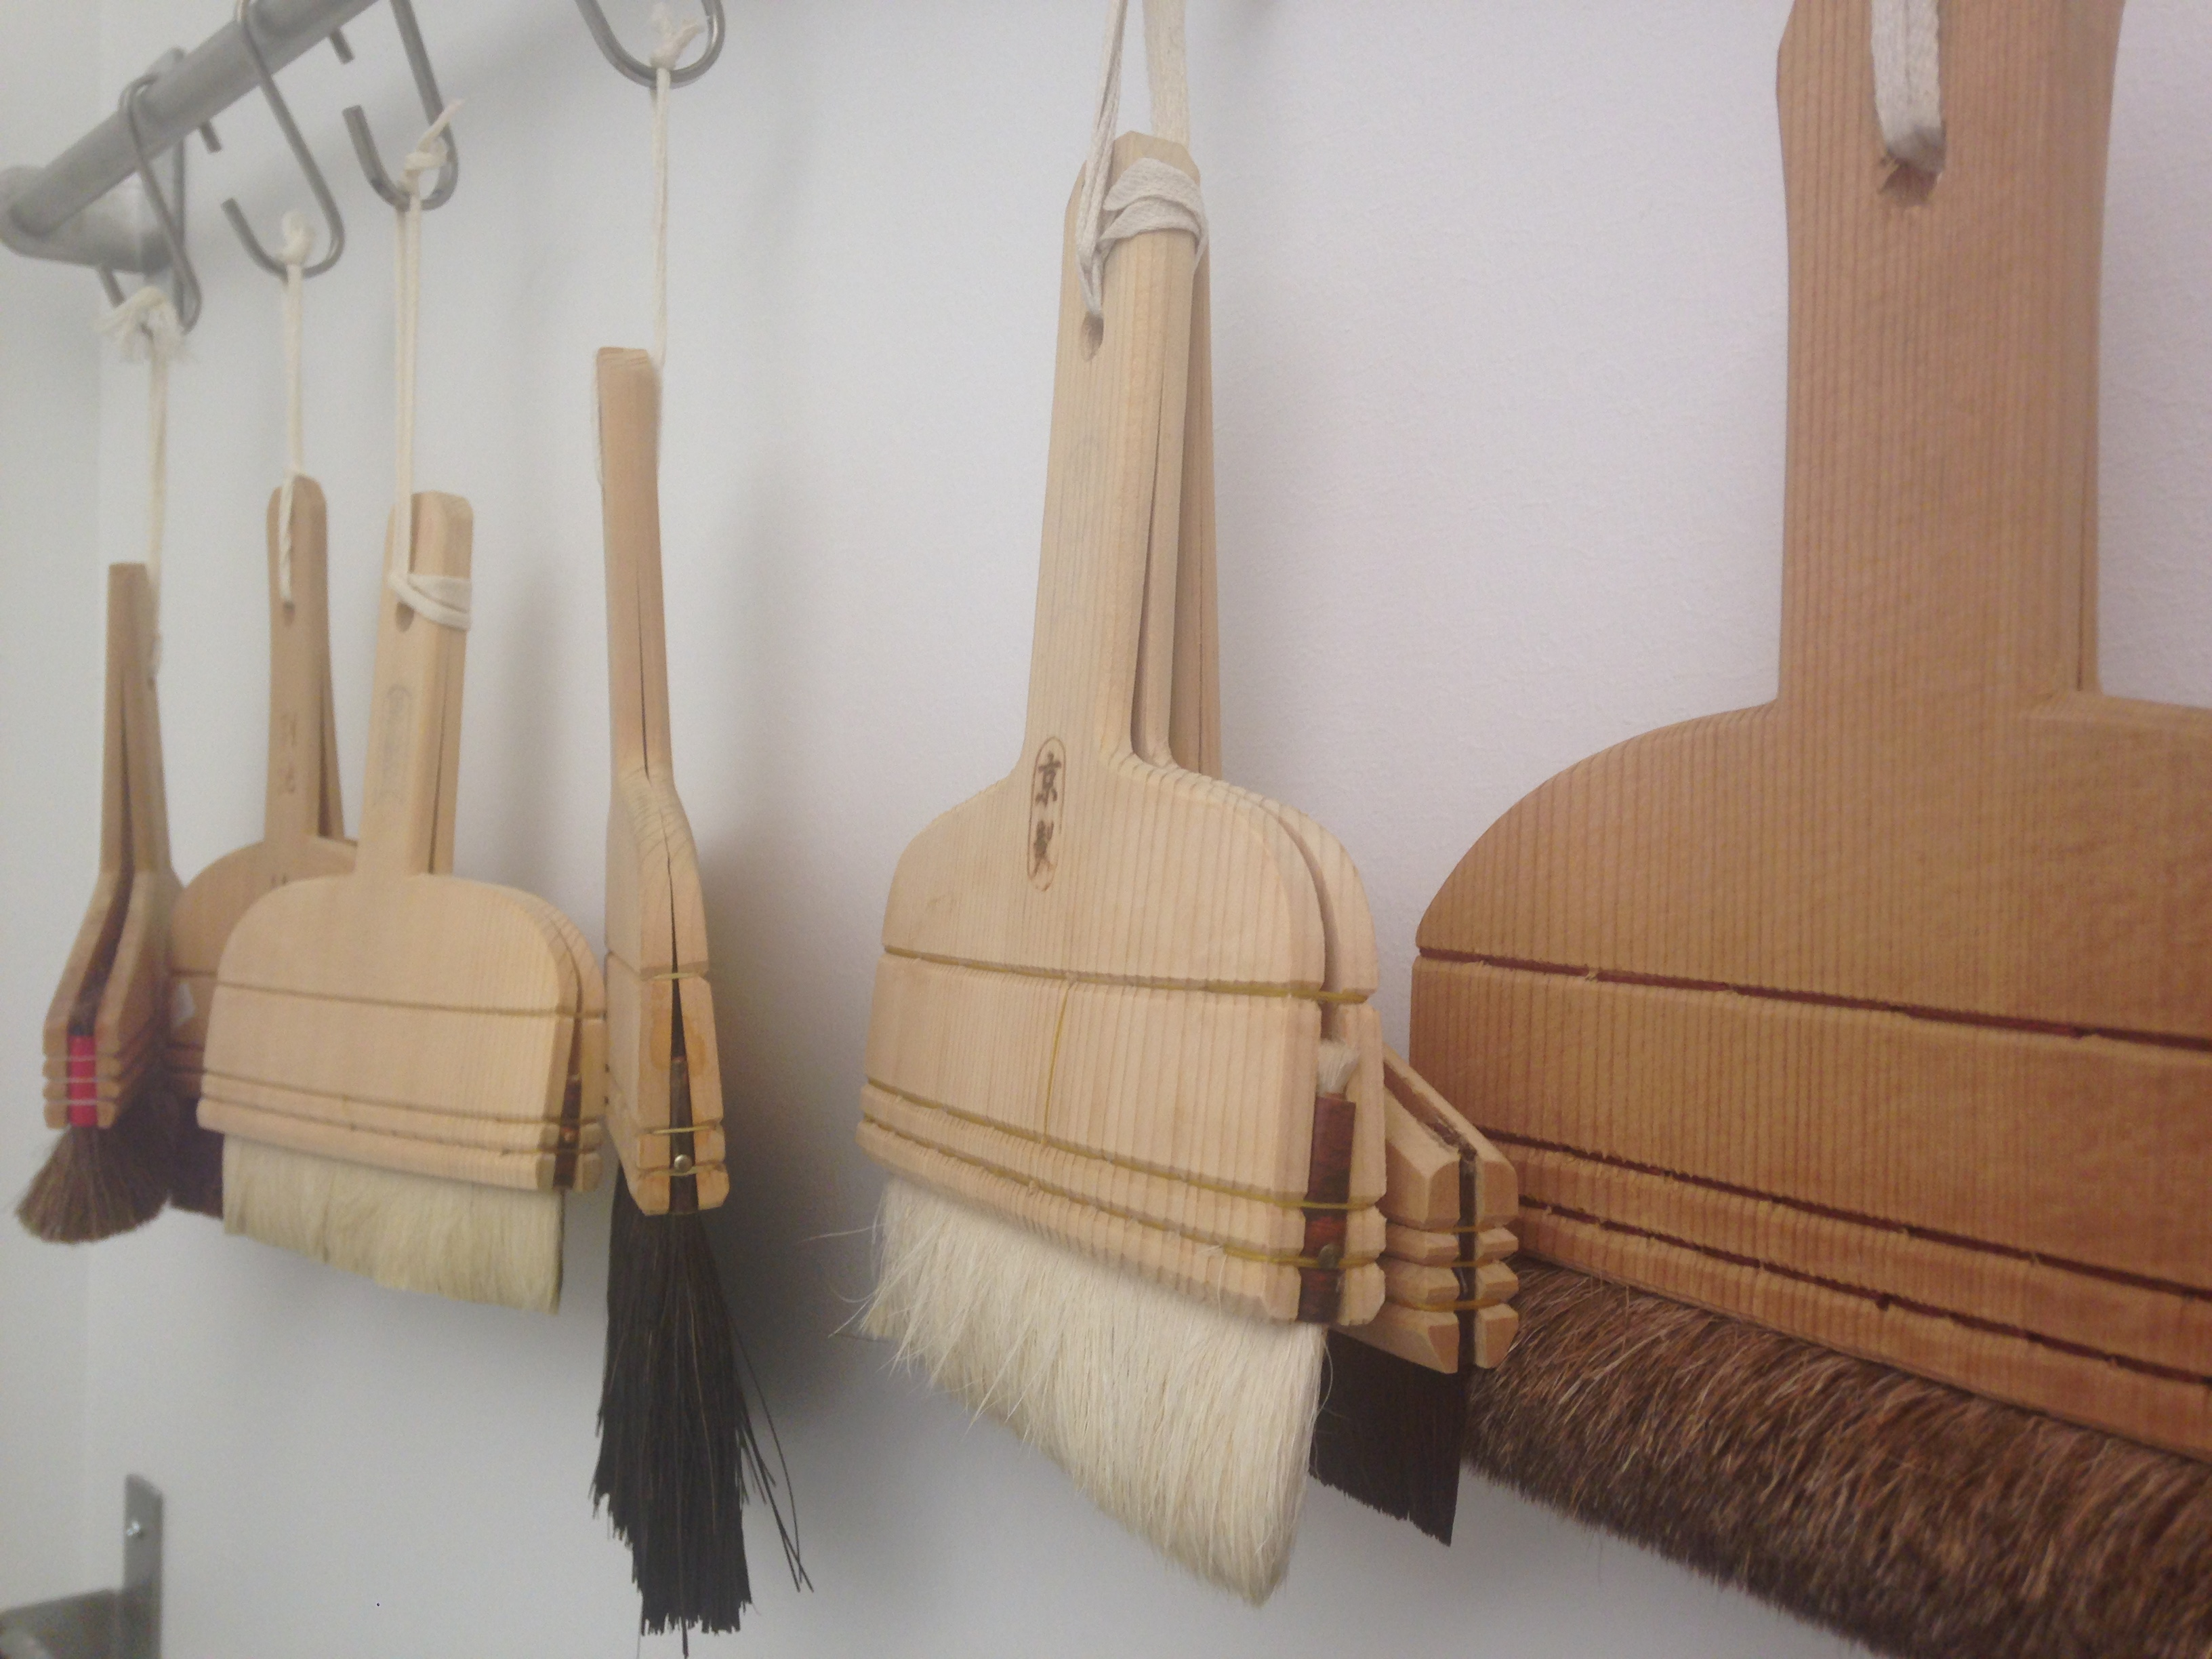 Japanese paste brushes hanging to dry